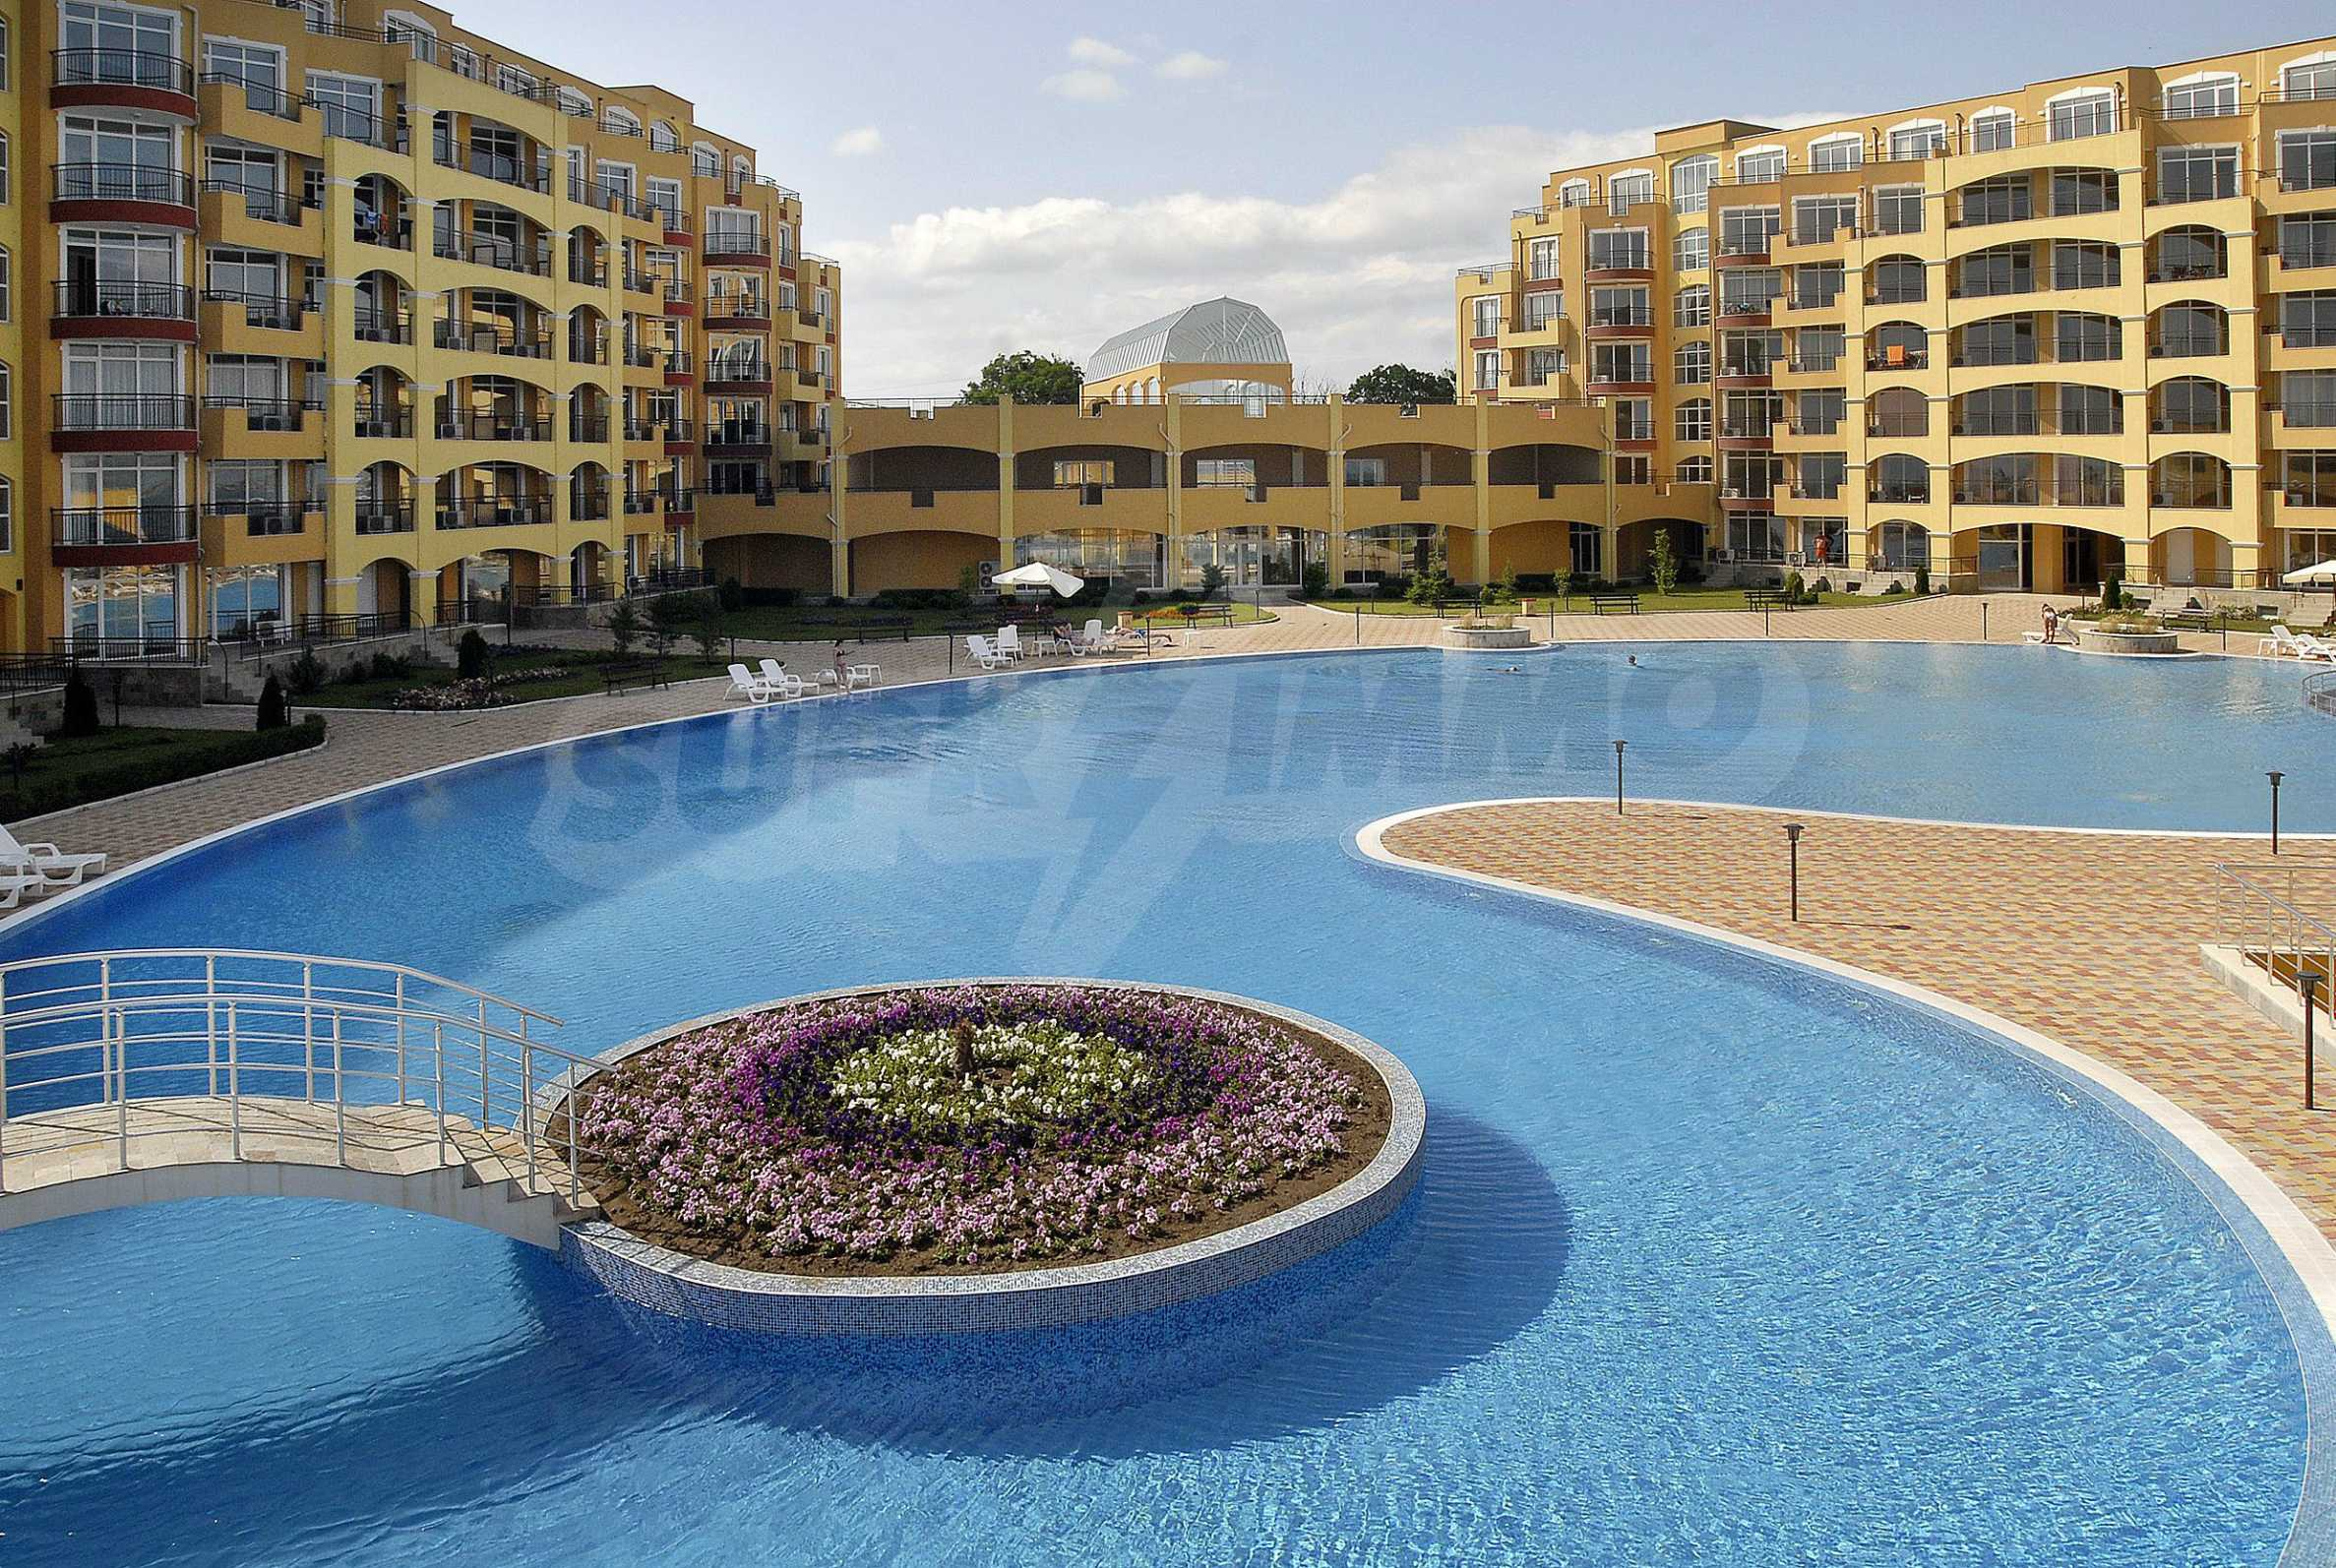 Studio for sale in Midia Grand Resort in Aheloy 11